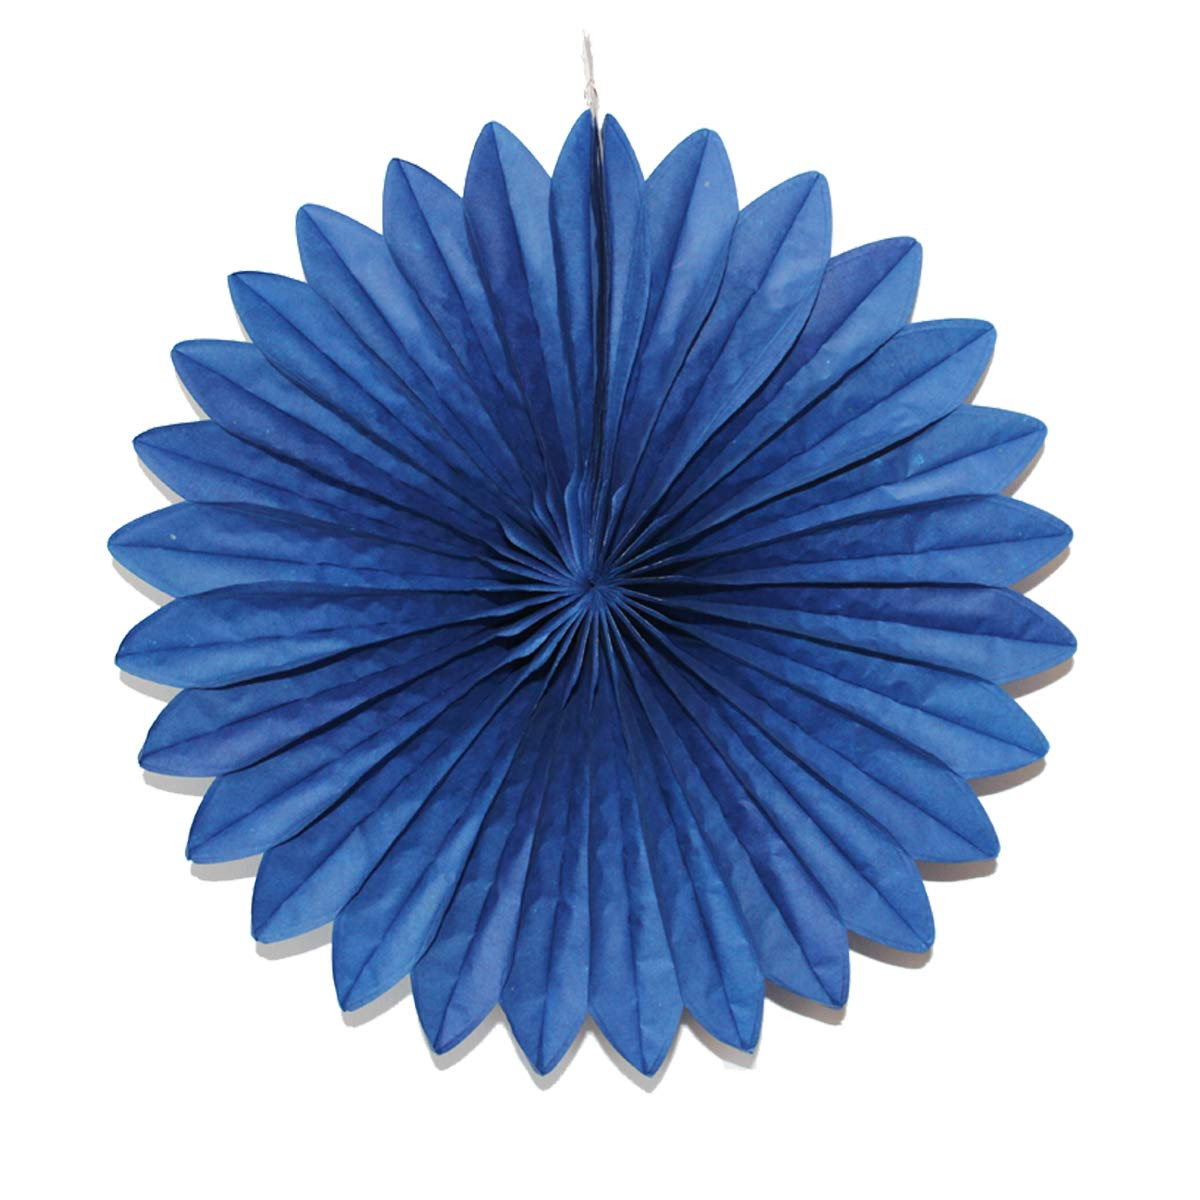 Royal Blue, Round-16 Dailygo 5pcs Hanging Paper Fans Party Paper Fan Decoration Tissue Paper Fans Honeycomb Paper Pom Poms Wall Backdrop Wedding Birthday Decor